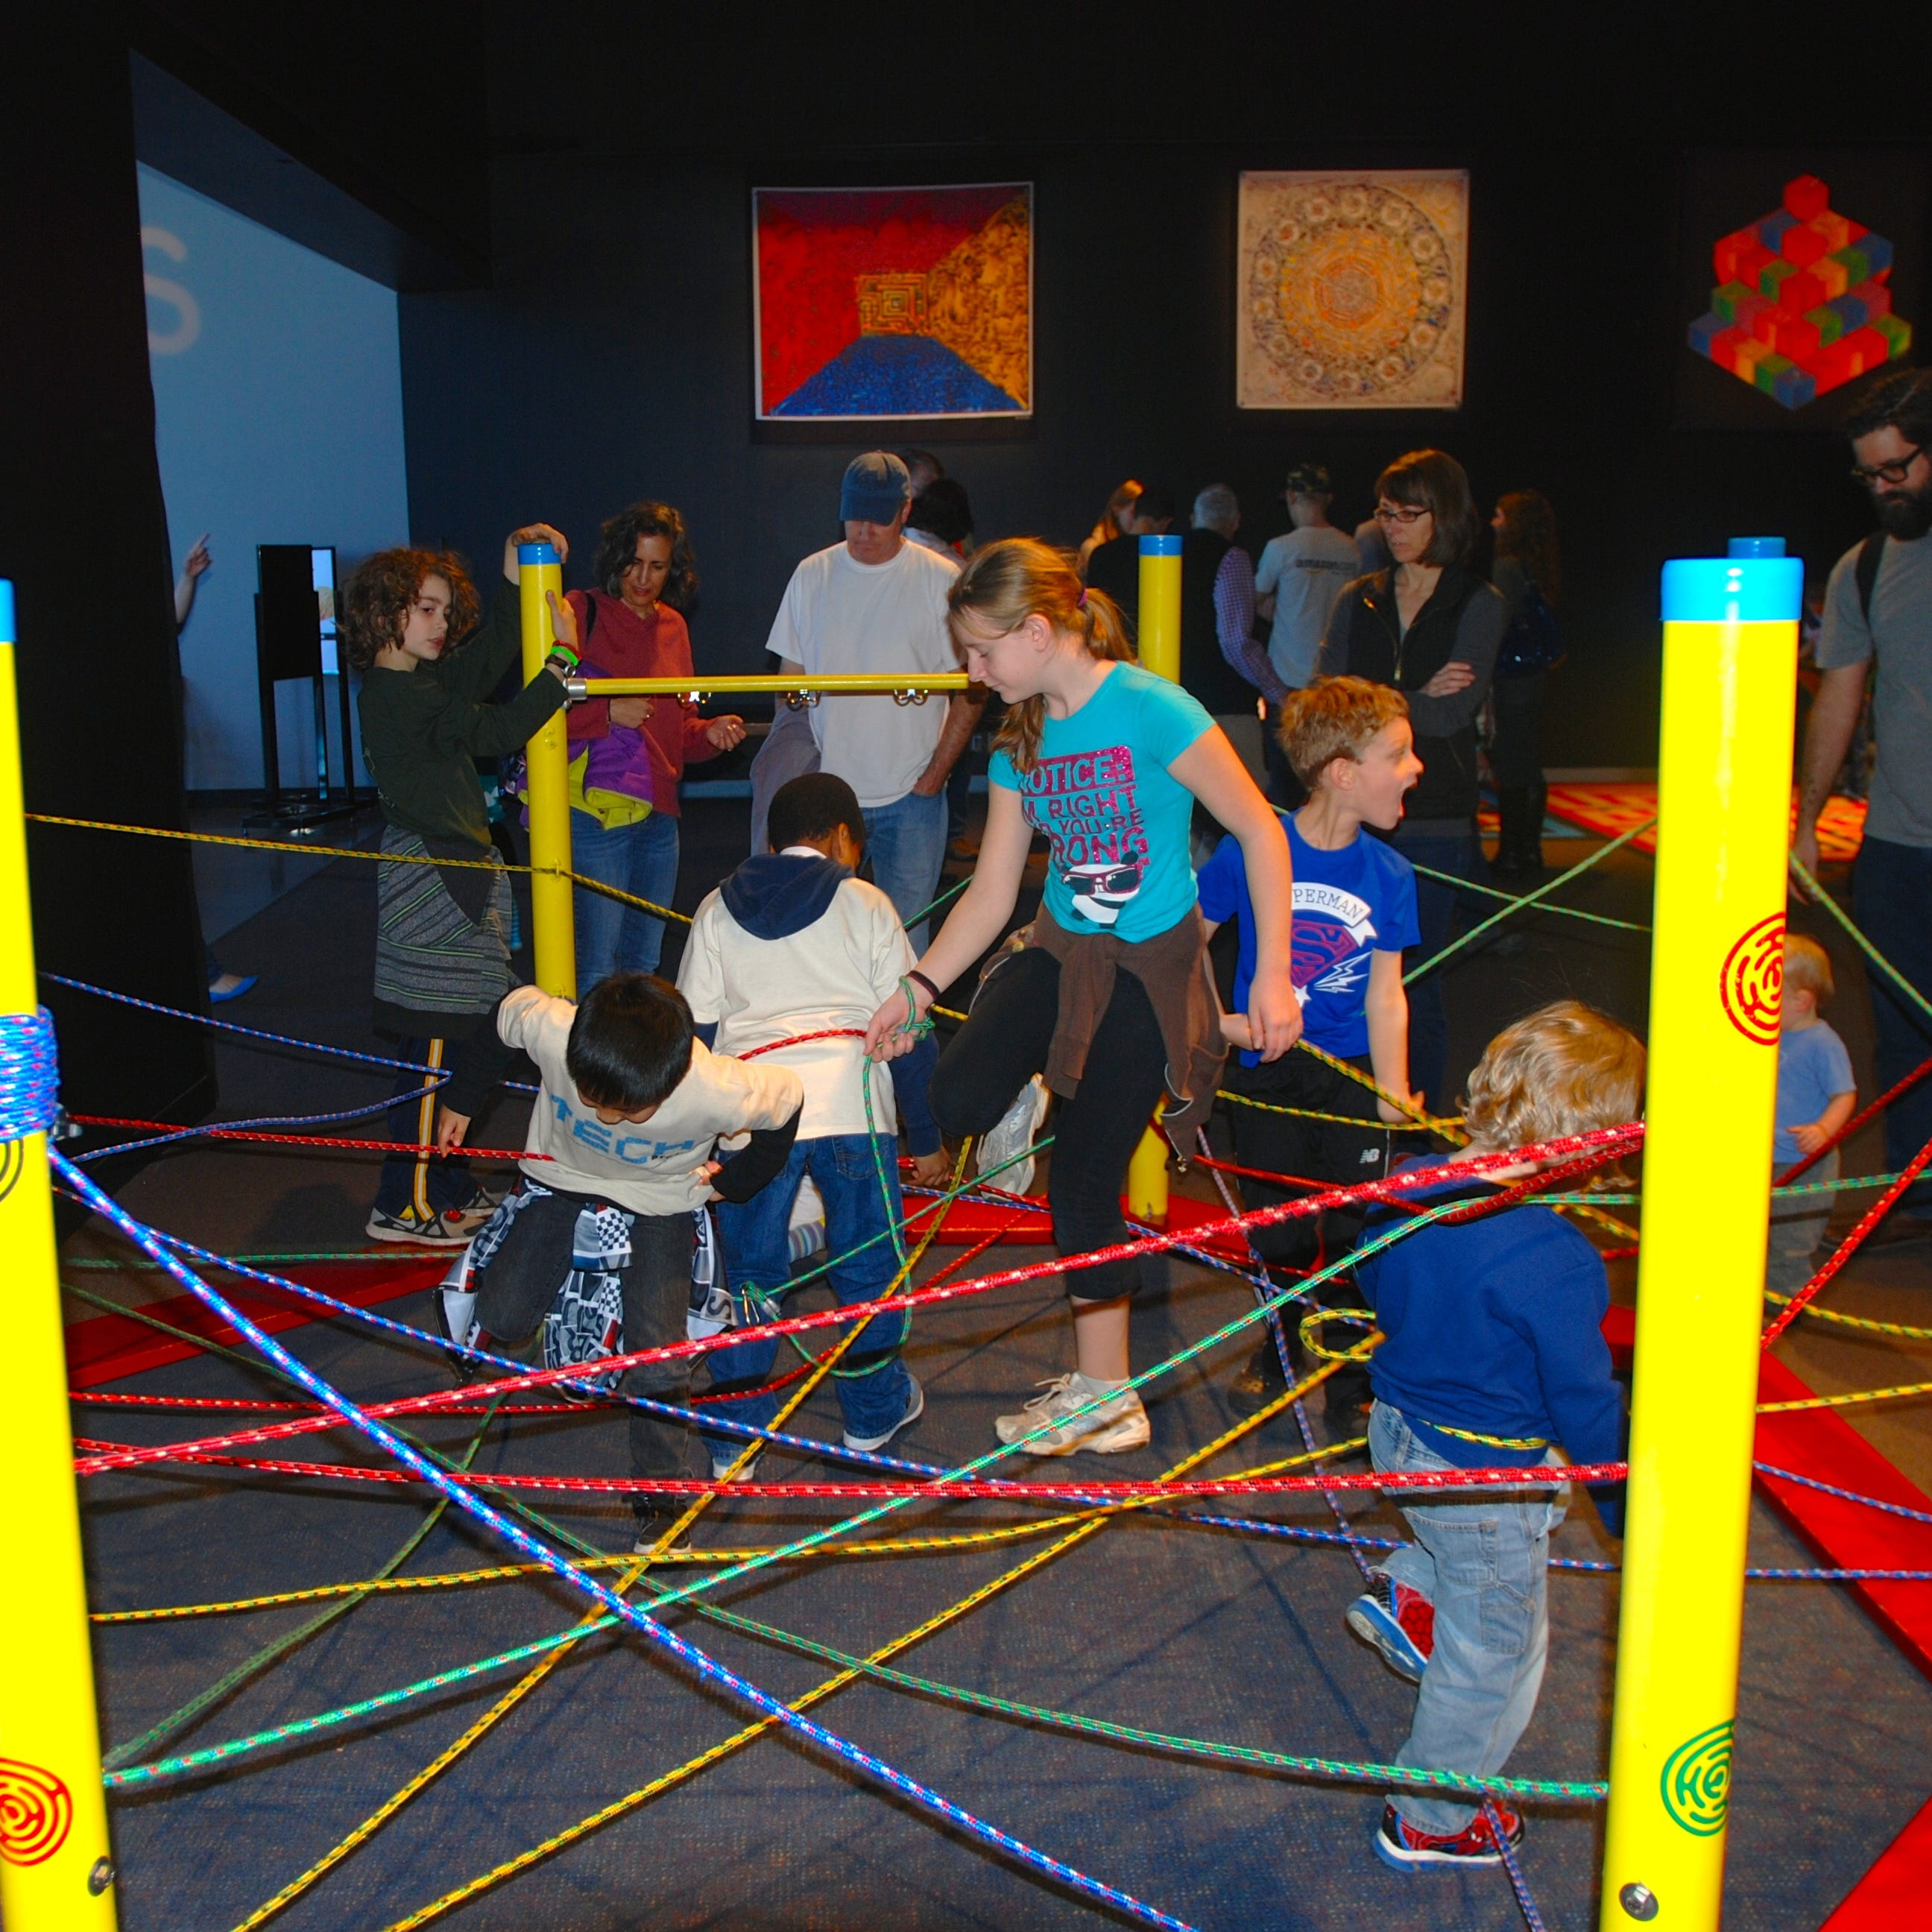 Families will be able to navigate their way through mazes at Discovery World's summer exhibit